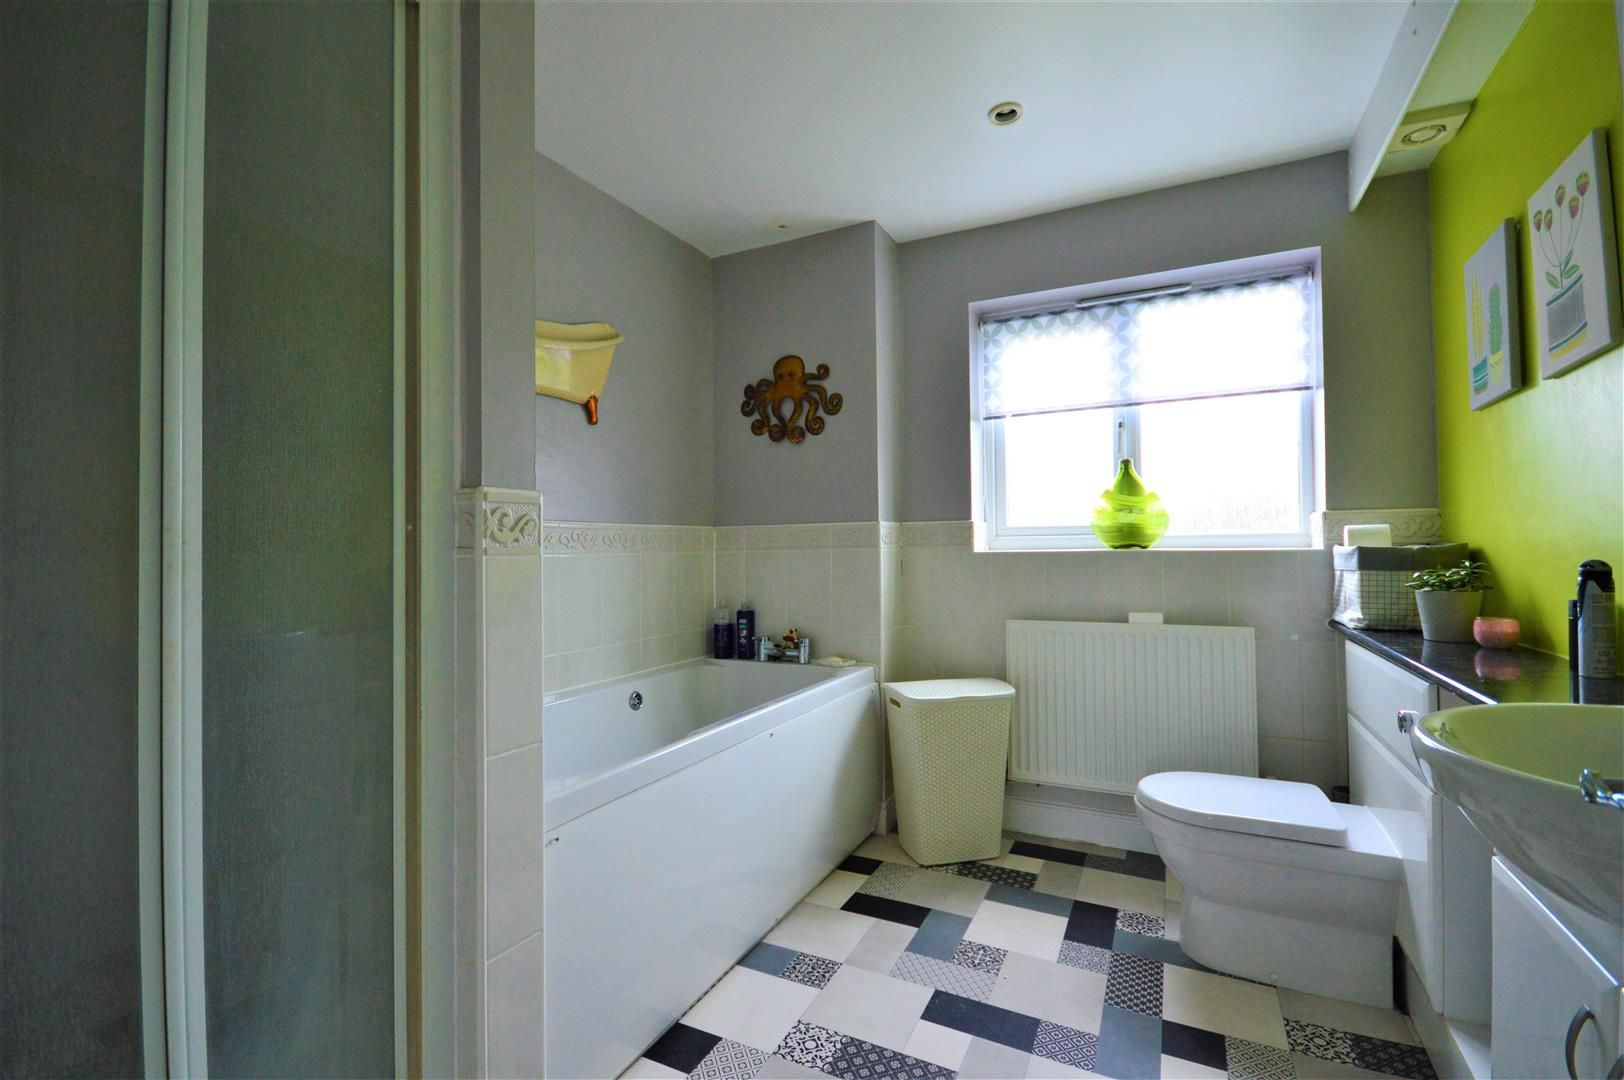 5 bed detached for sale in Kingstone  - Property Image 8